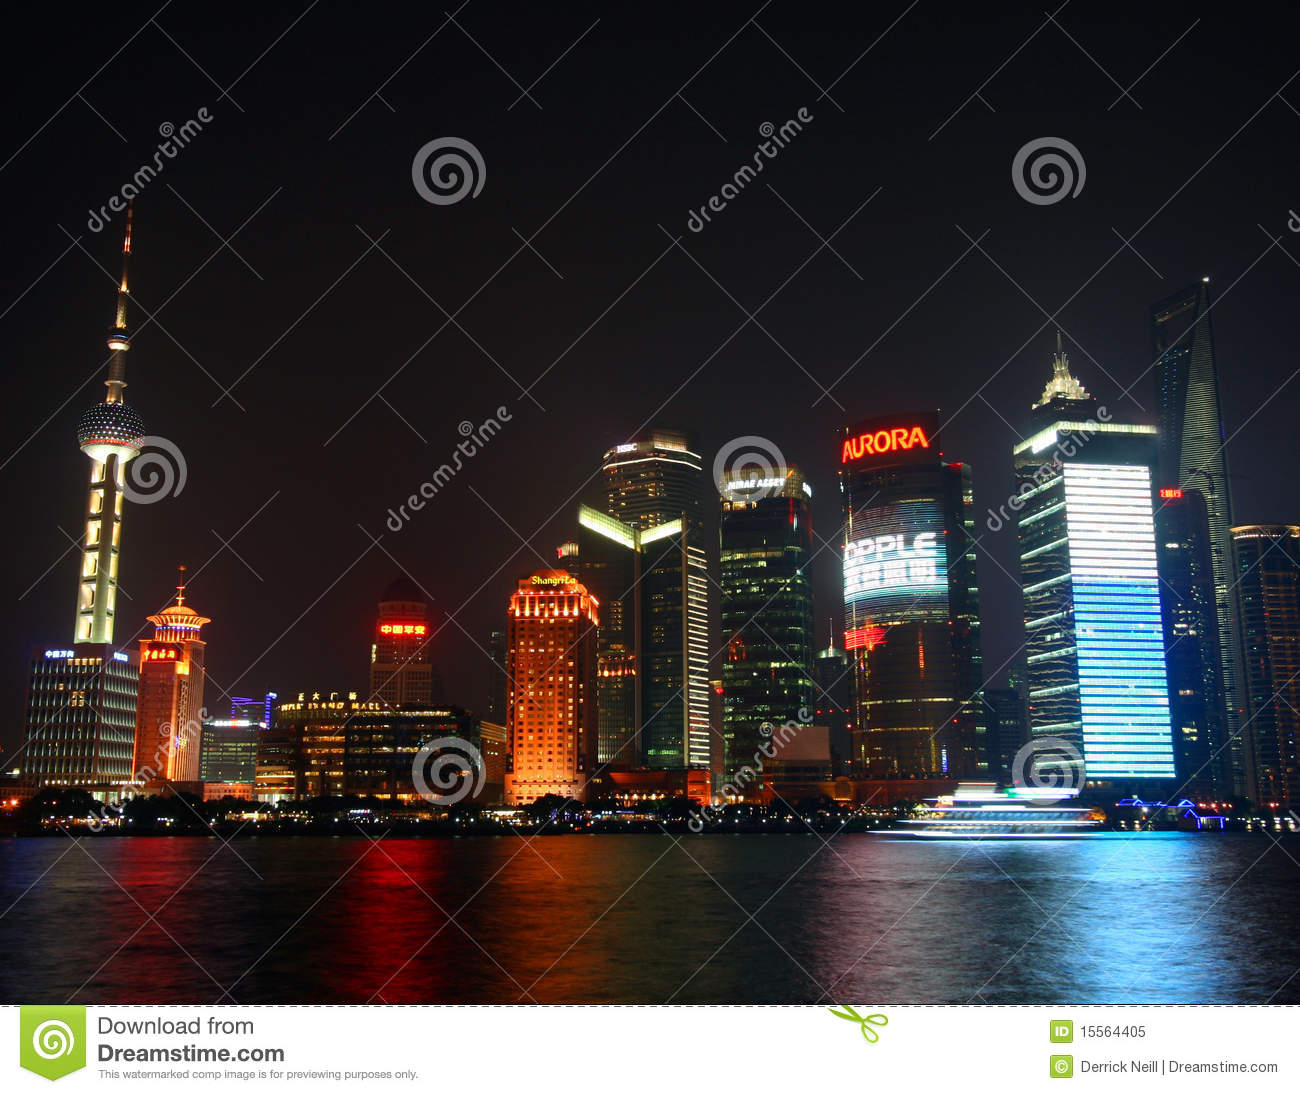 A Night Scene of Pudong